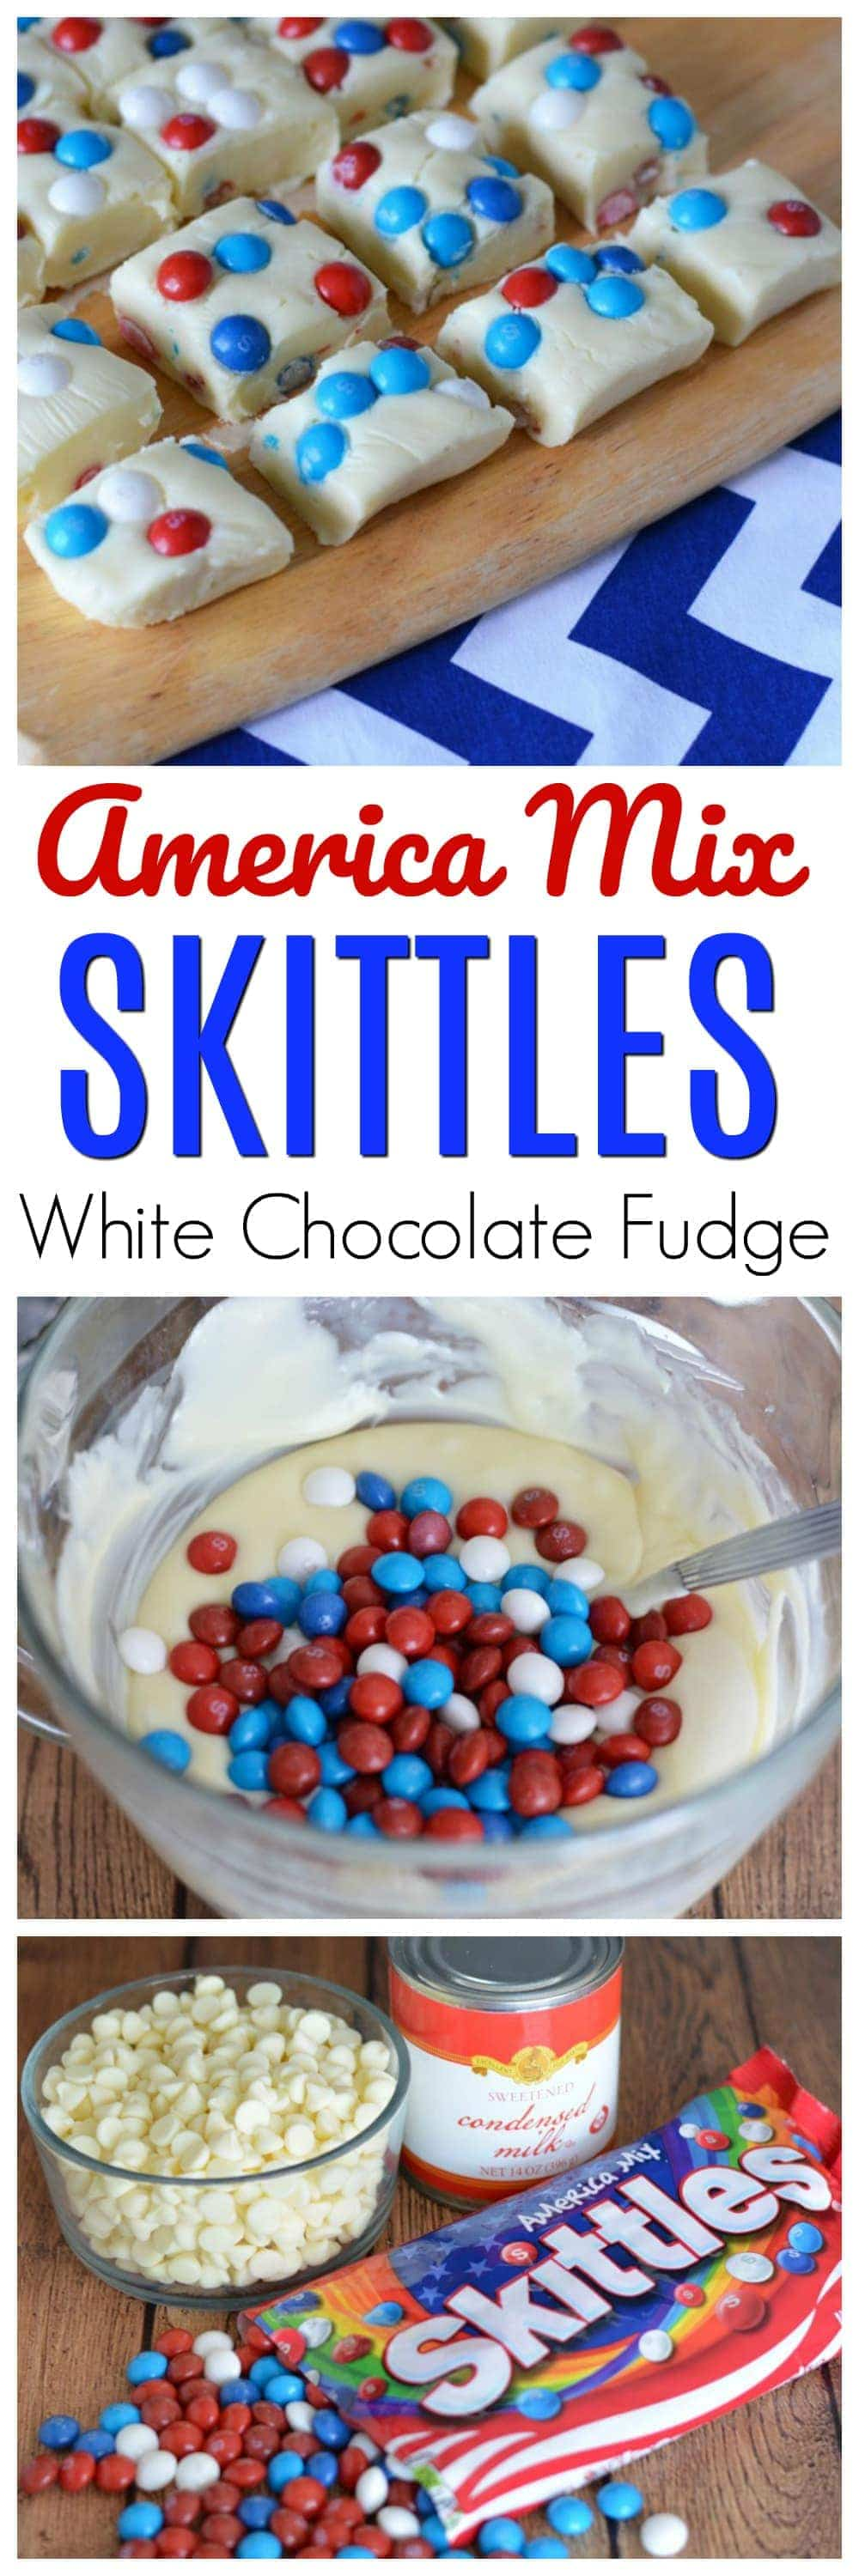 The Fourth of July is almost here and what better way to add some patriotic flair to your treats than with Skittles America Mix White Chocolate Fudge.